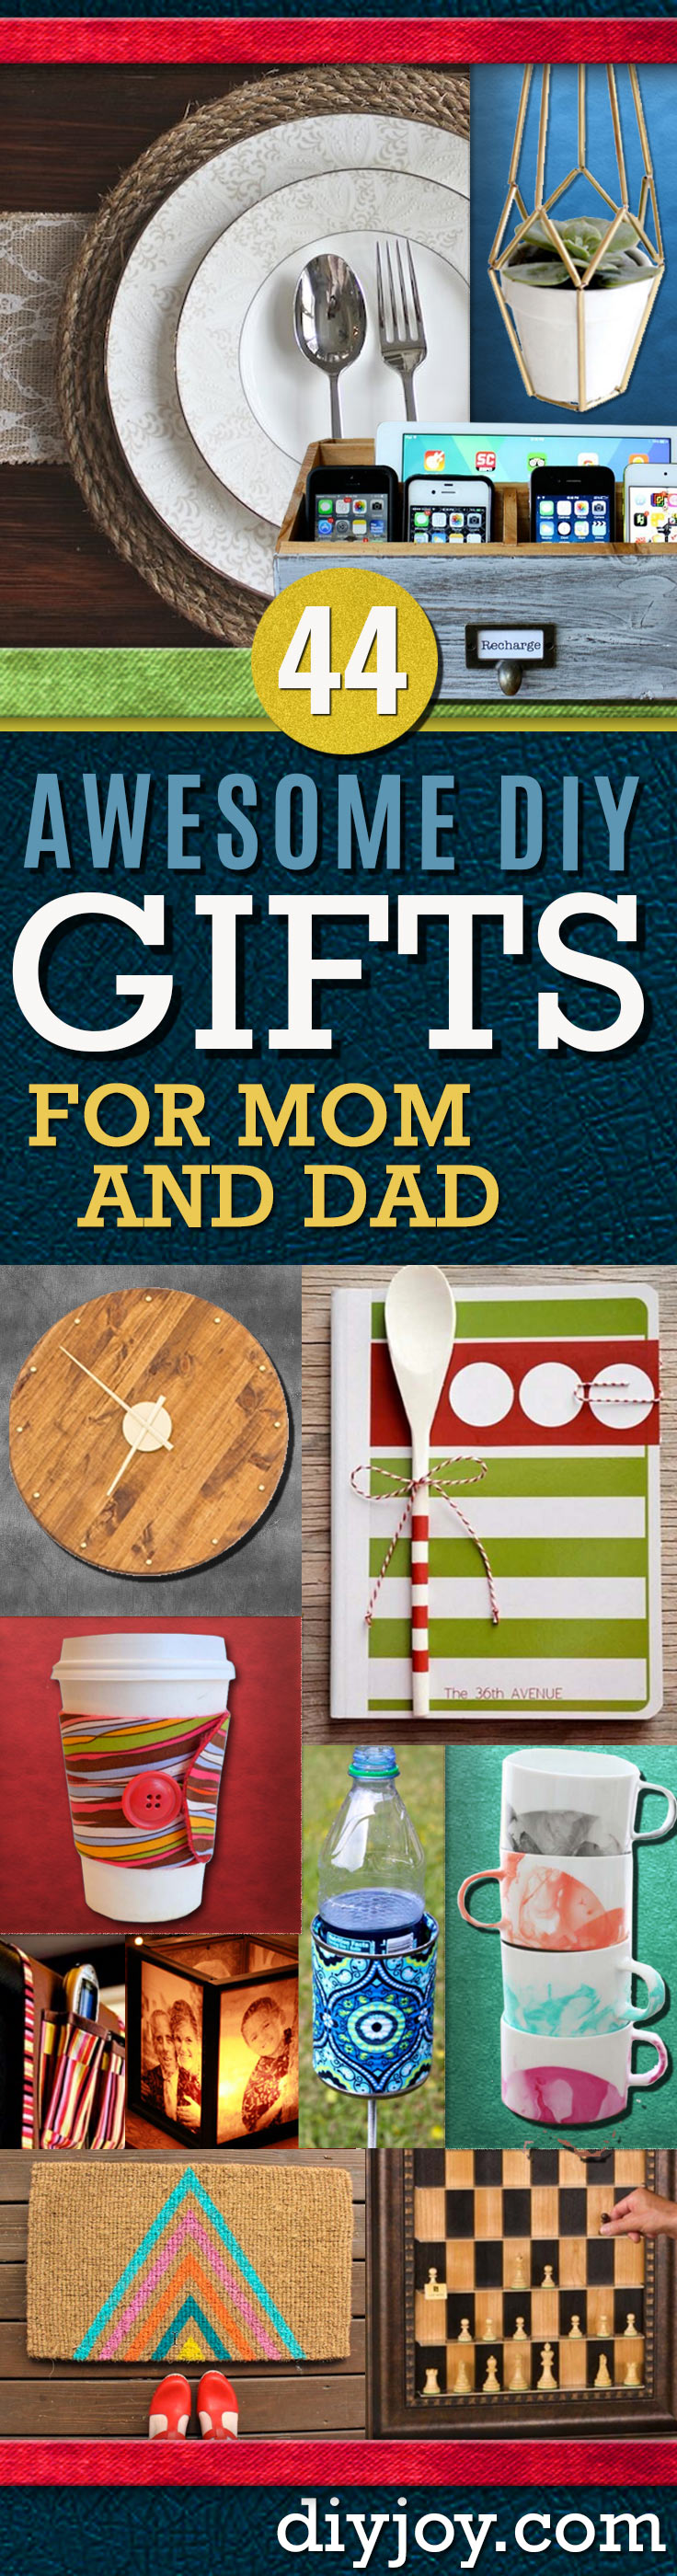 Awesome diy gift ideas mom and dad will love diy joy diy gifts for mom and dad homemade christmas gift ideas for your parents cool solutioingenieria Images